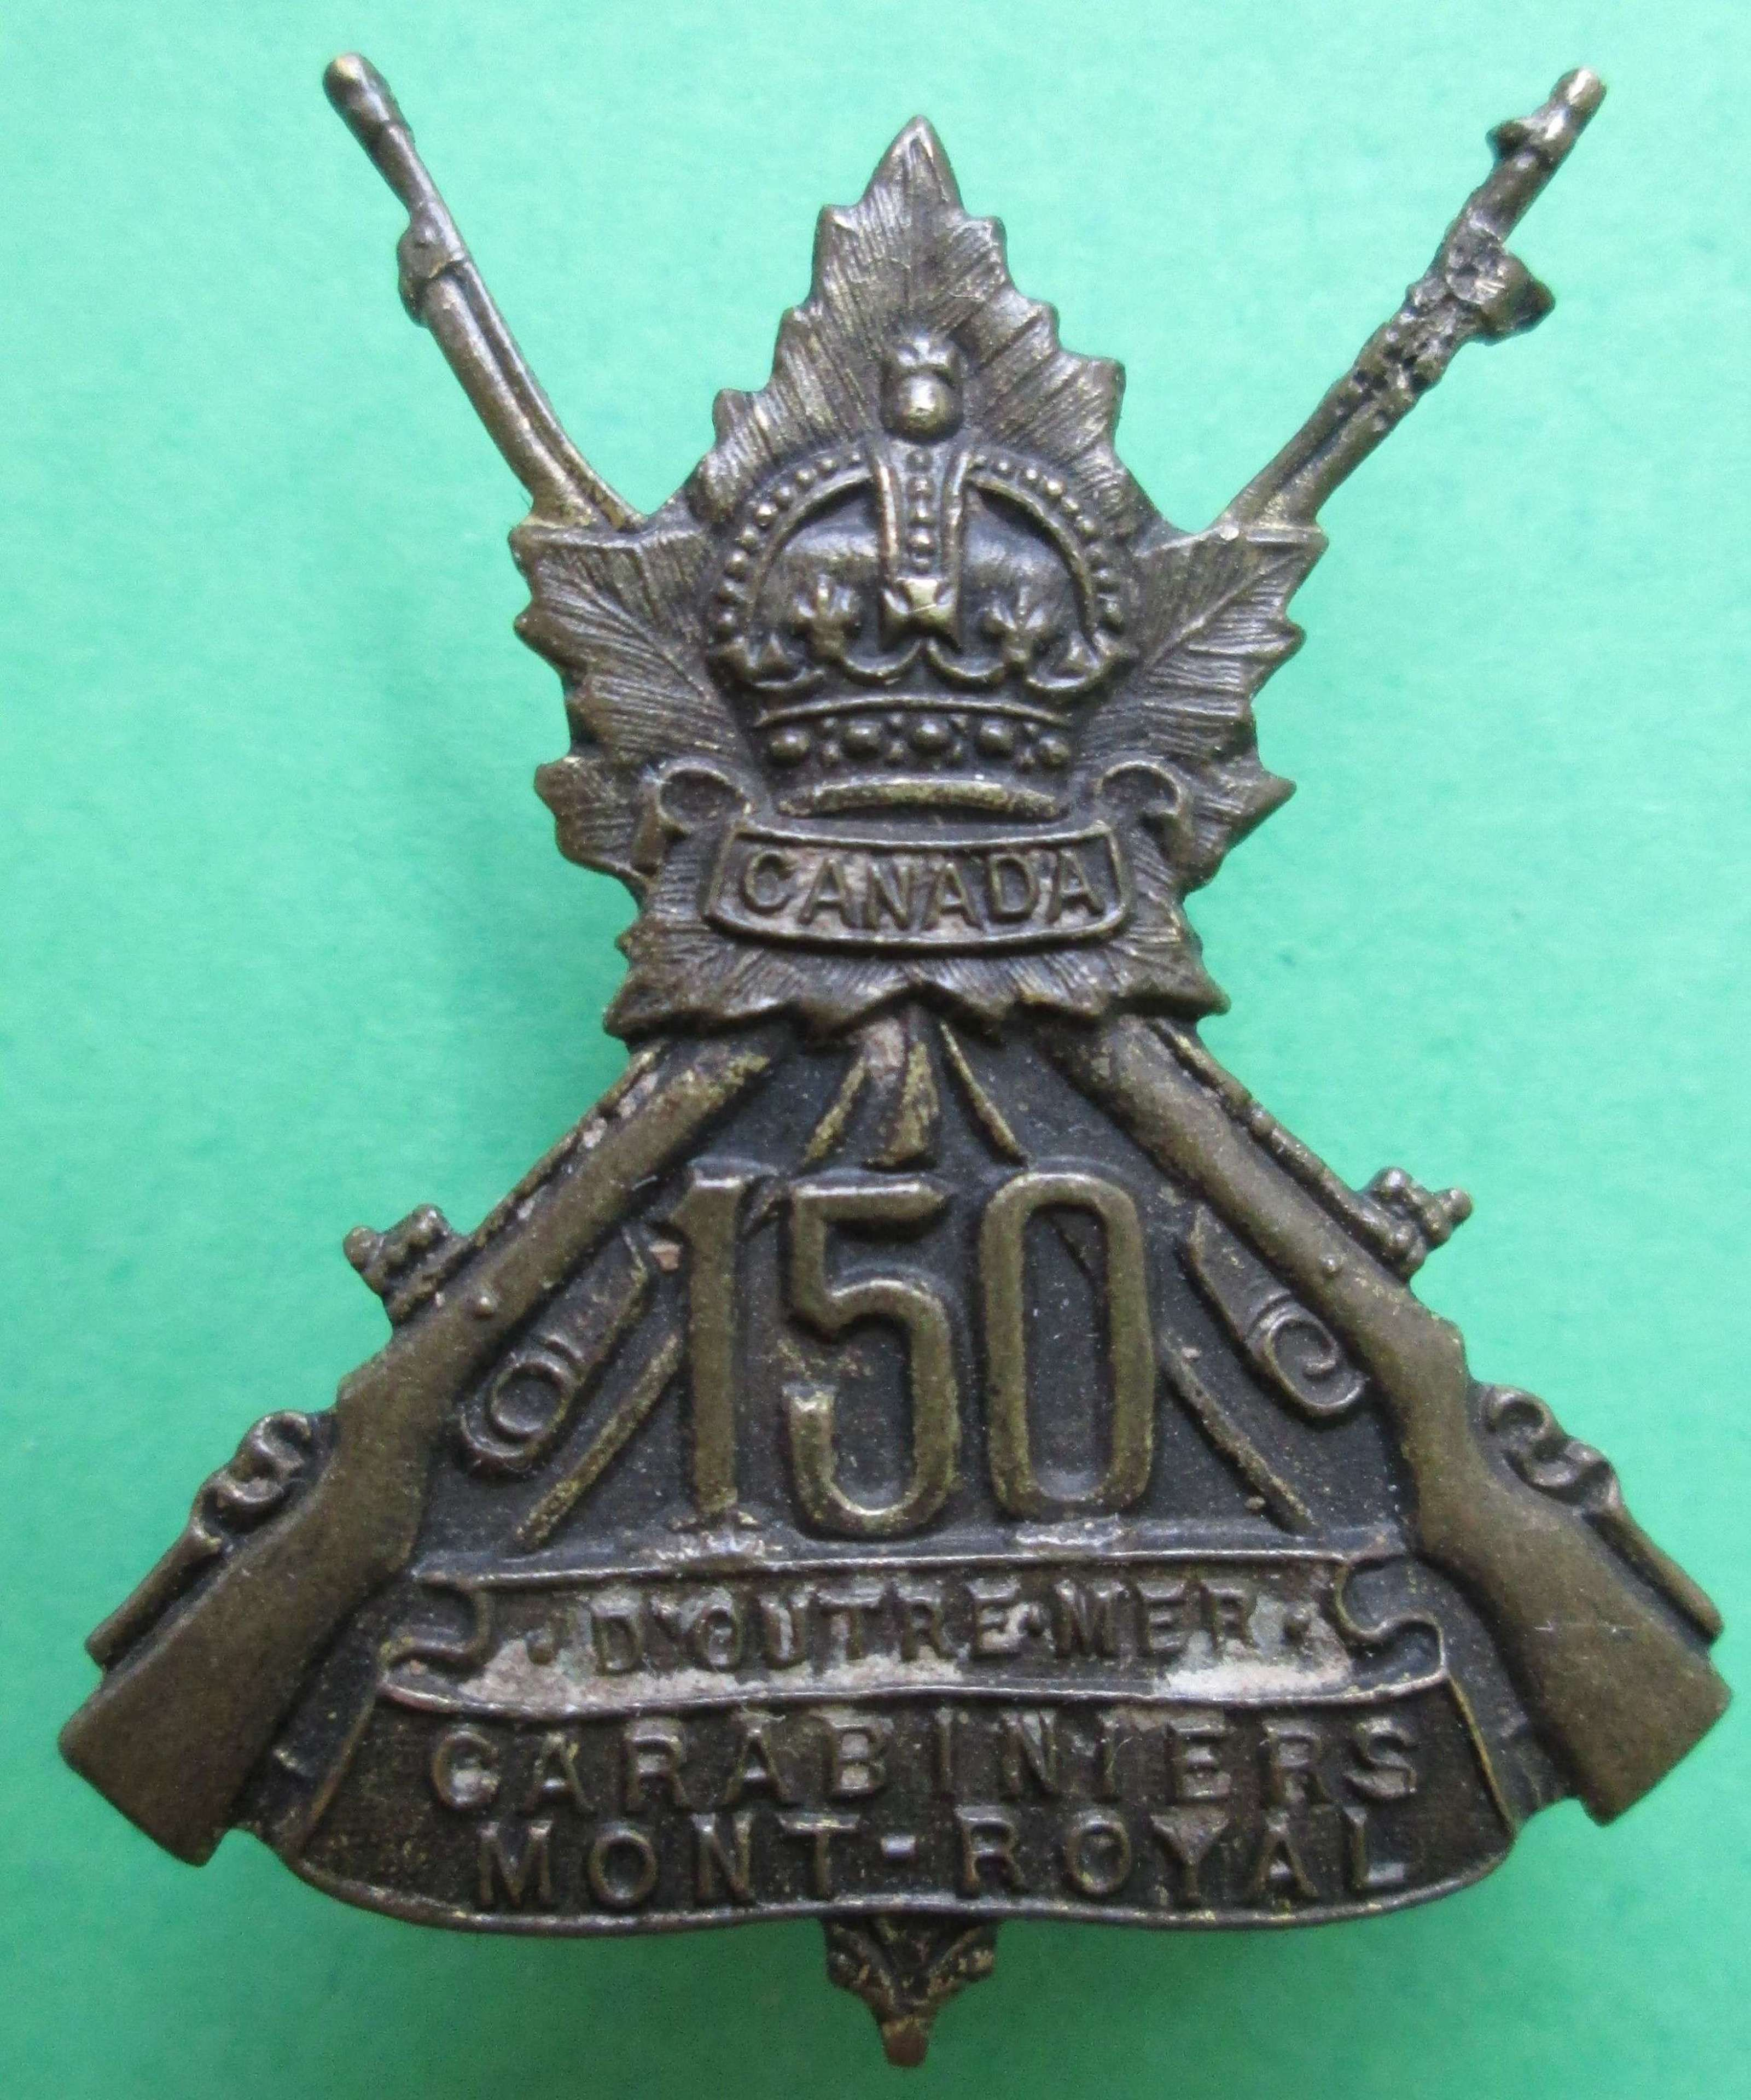 150th INFANTRY BATTALION (150TH CARBINIERS MOUNT ROYAL) COLLAR BADGE